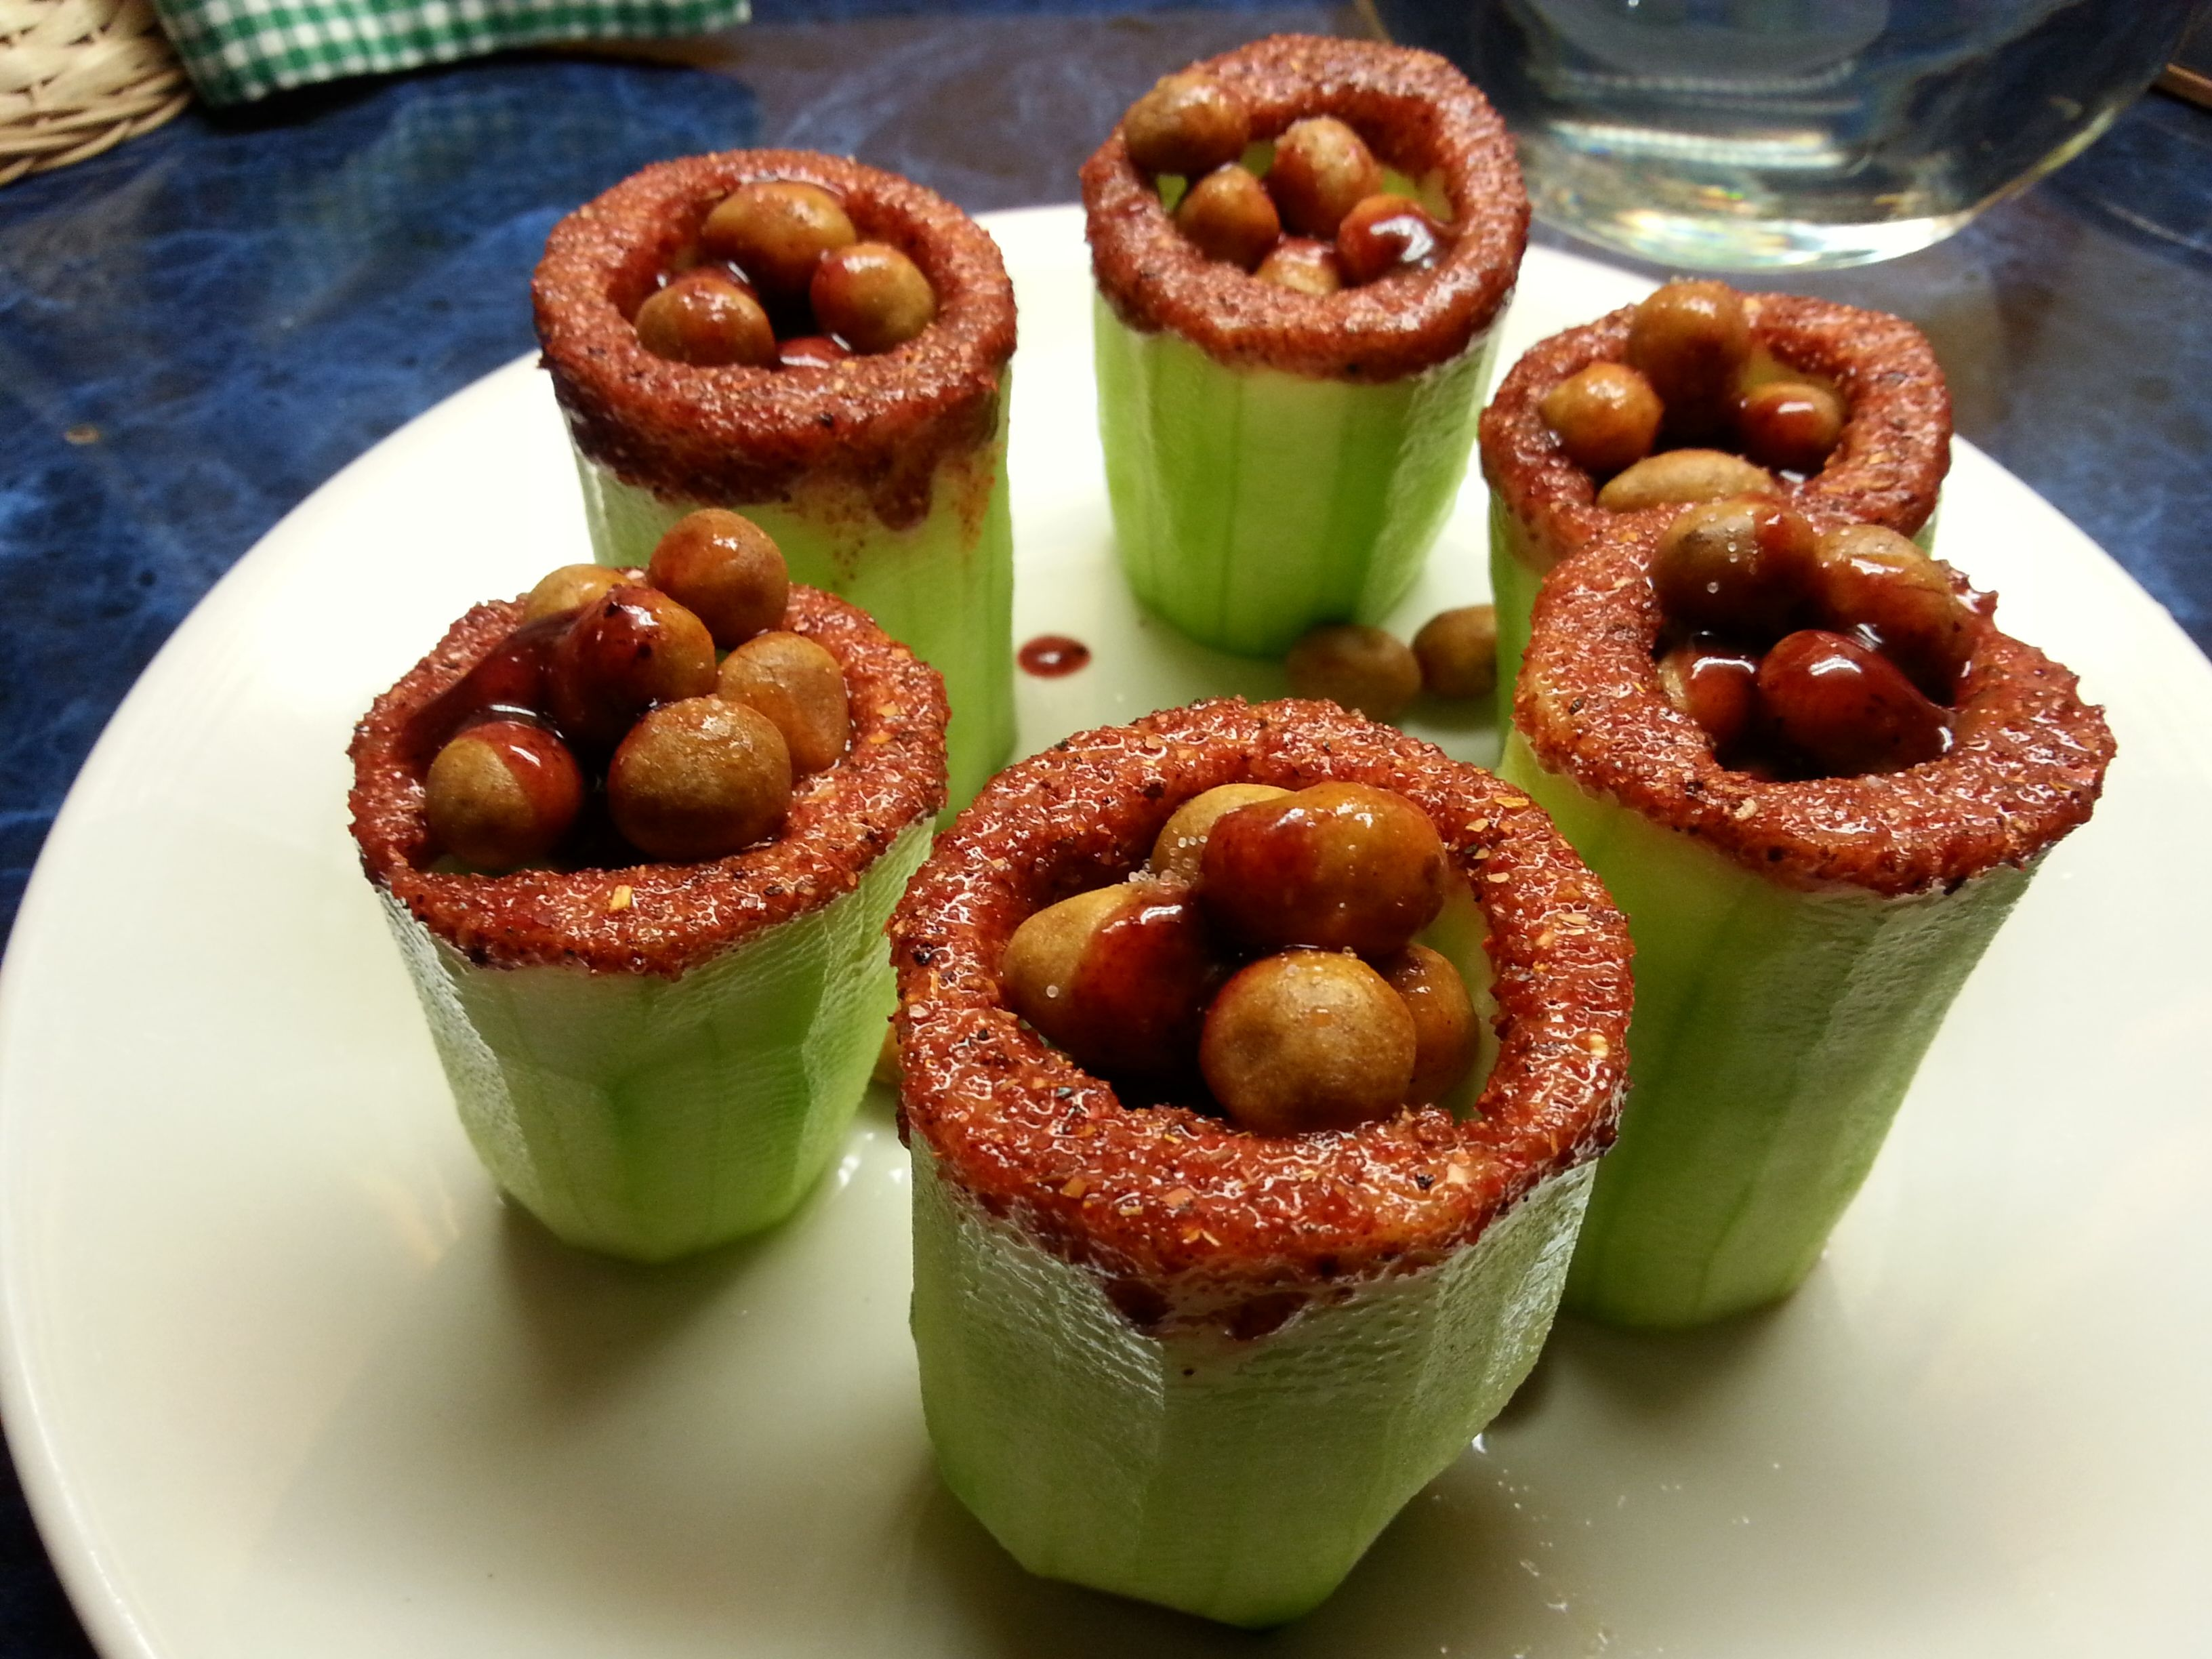 Cucumbers filled with peanuts cacahuates japoneses